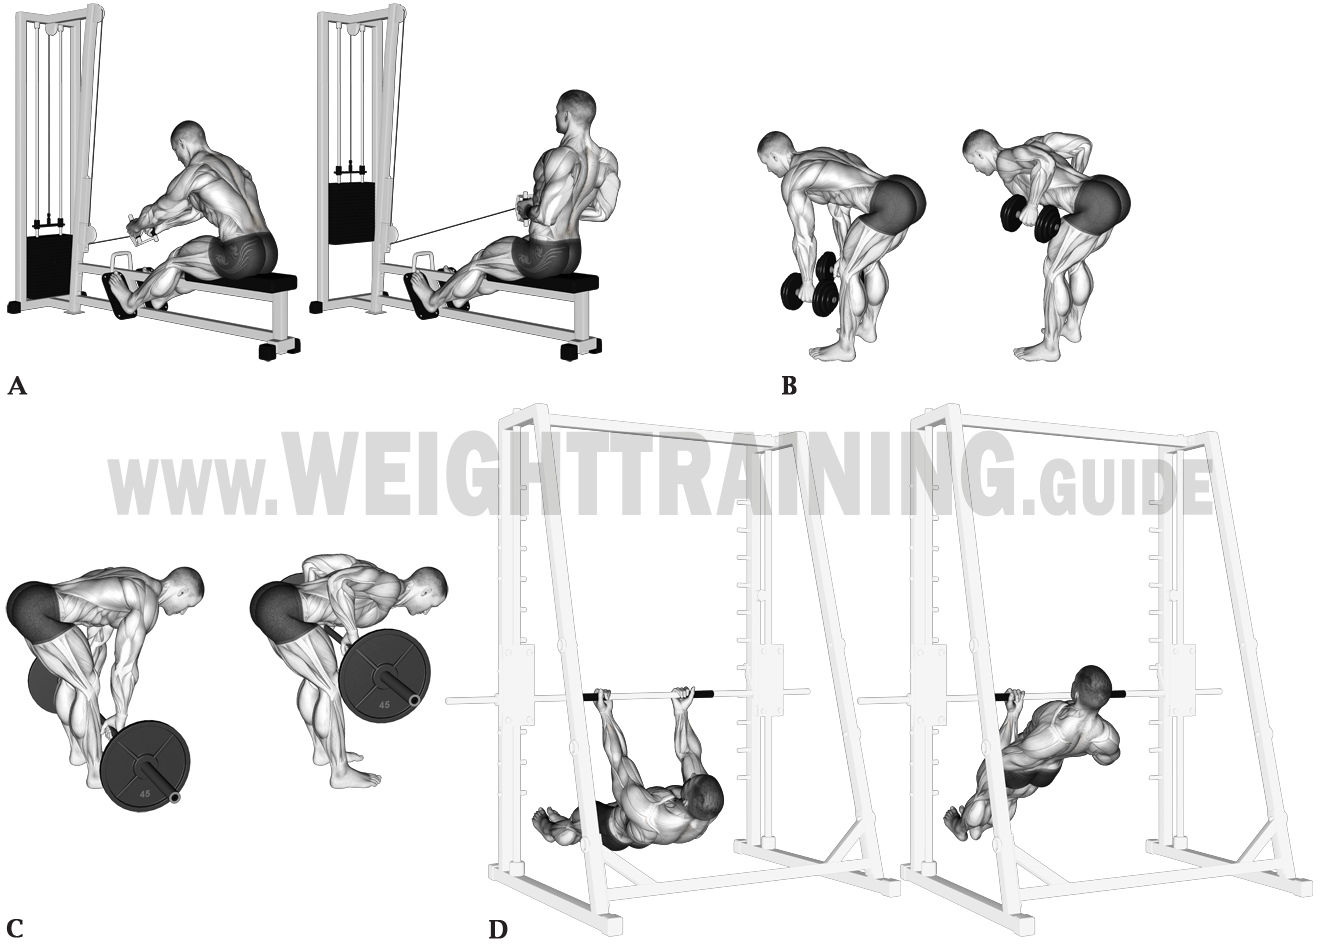 Horizontal pulling exercises, upper arms close to torso